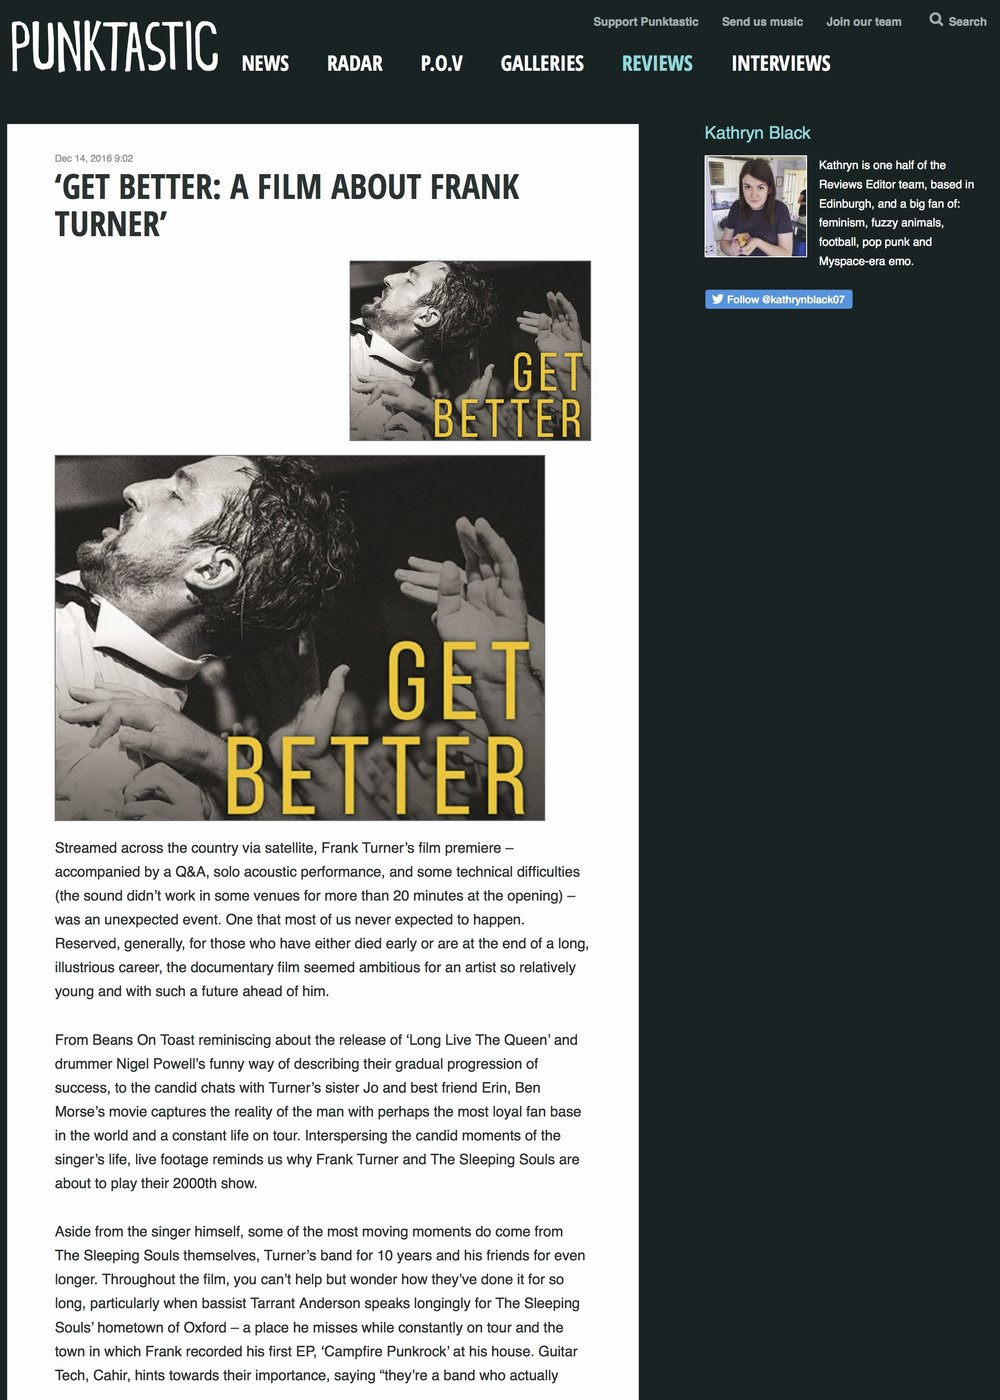 'Get Better: A Film About Frank Turner' - Punktastic.jpg